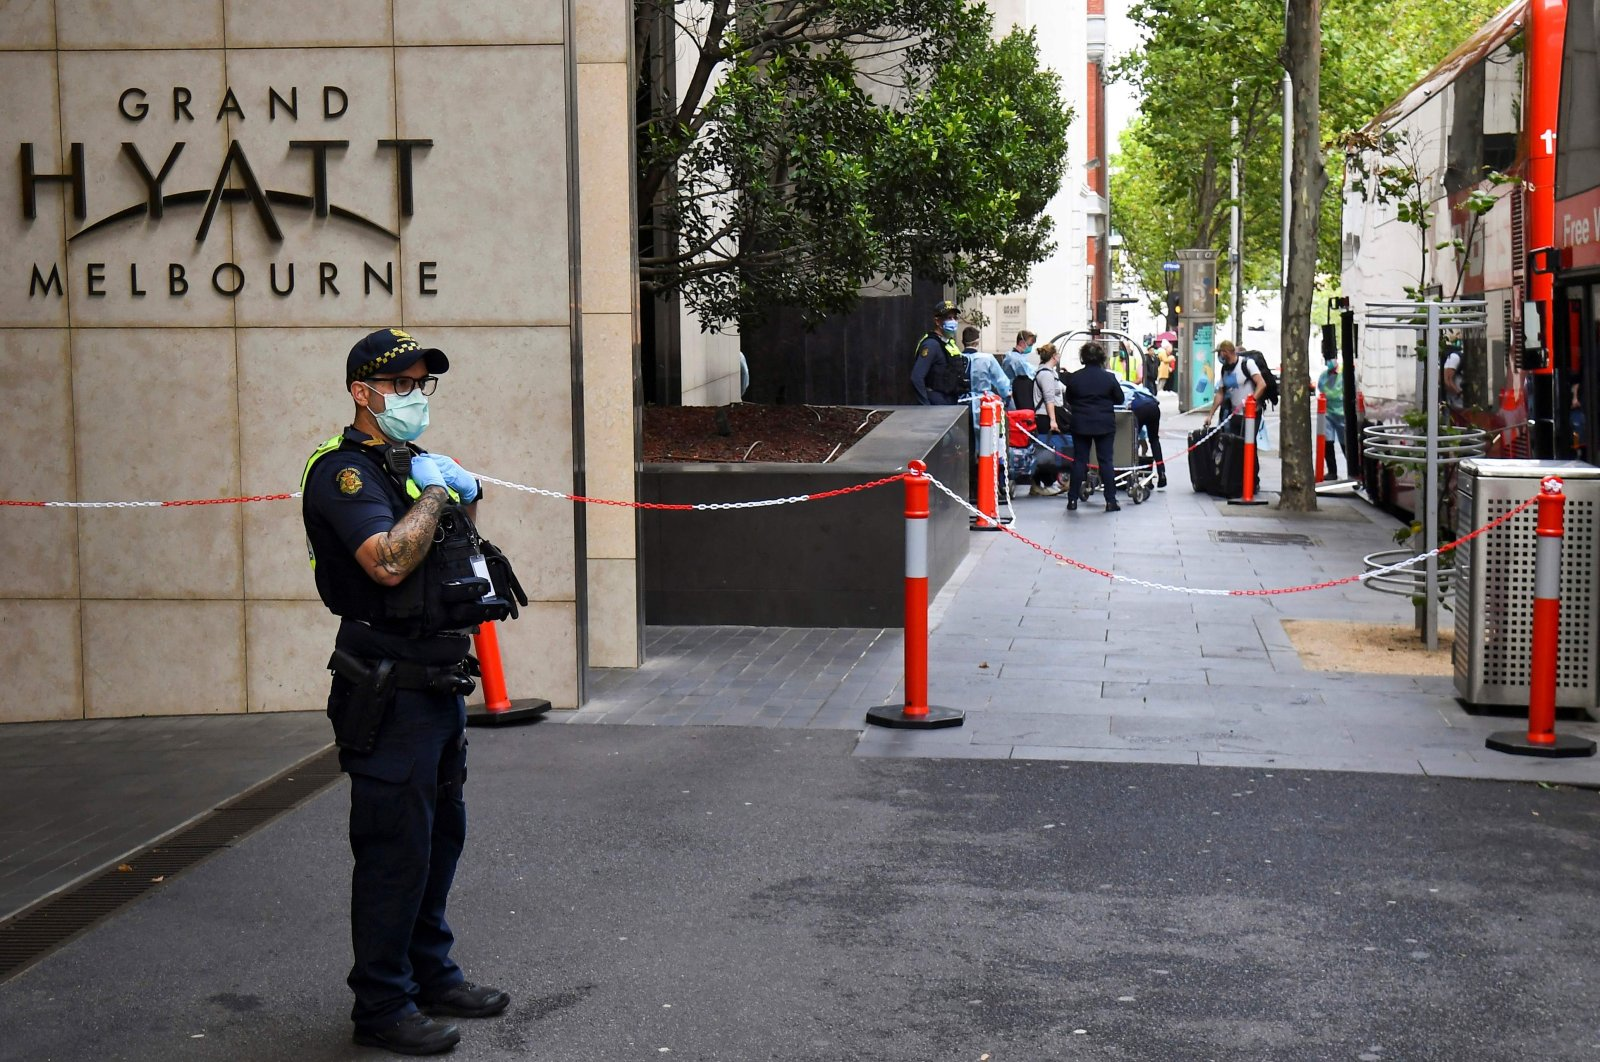 A law enforcement officer stands guard outside the Grand Hyatt hotel as tennis players and officials arrive for a two-week quarantine ahead of the Australian Open, Melbourne, Australia, Jan. 15, 2021. (AFP Photo)